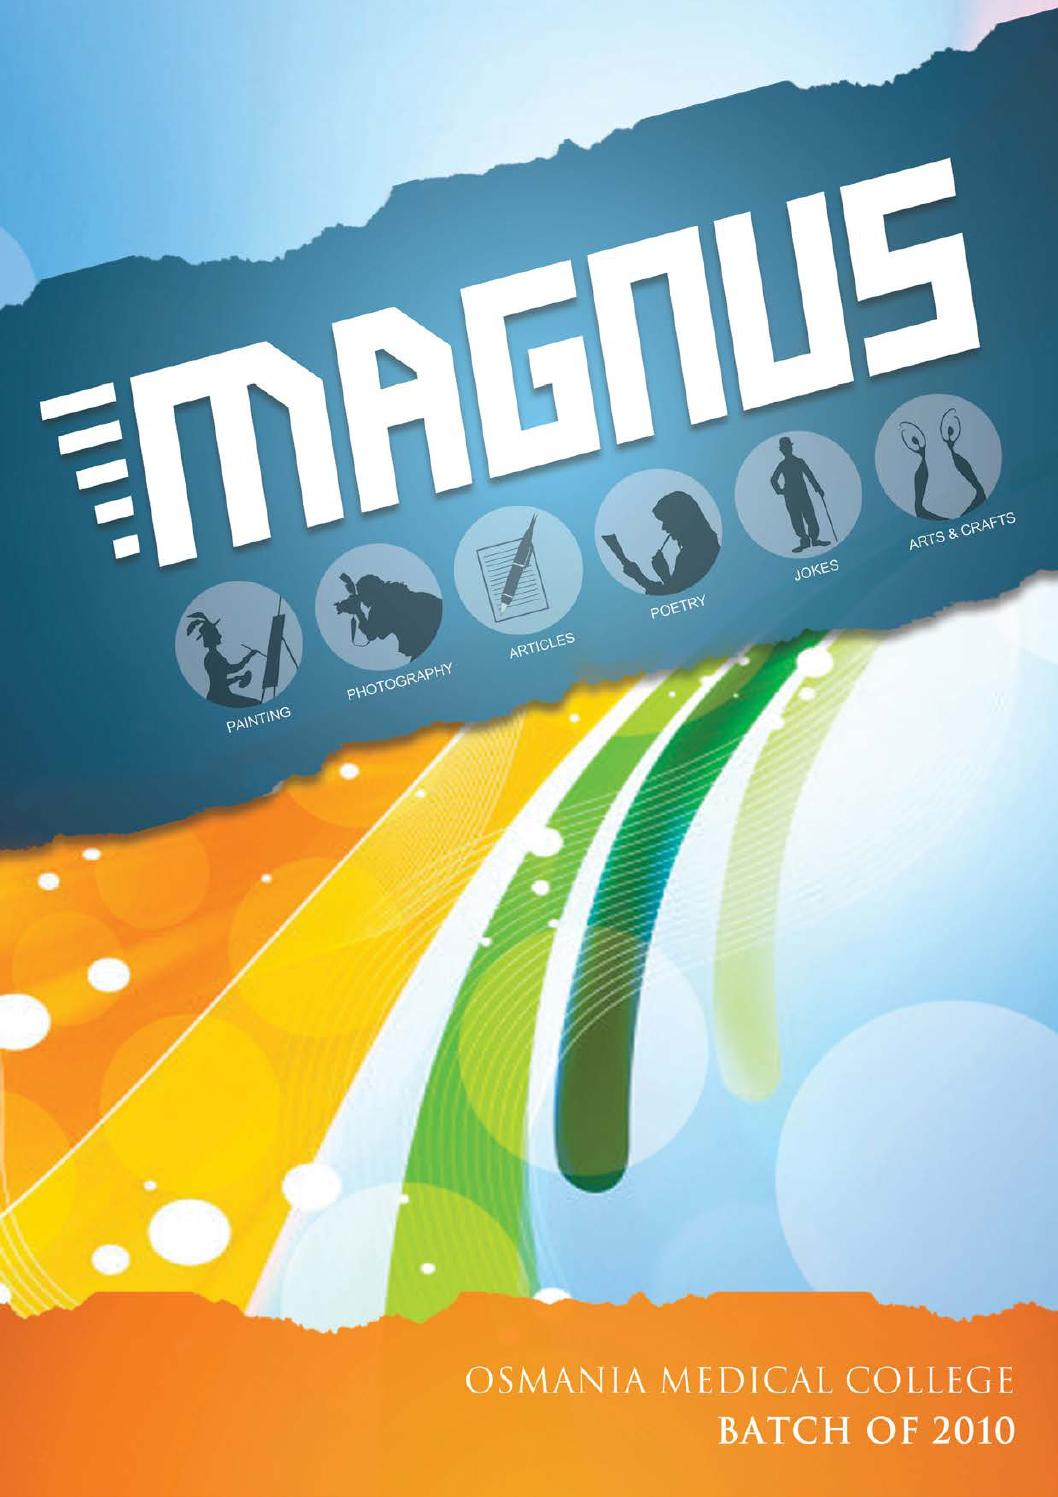 Magnus - College Magazine by Osmania Medical College 2010 Batch by ...